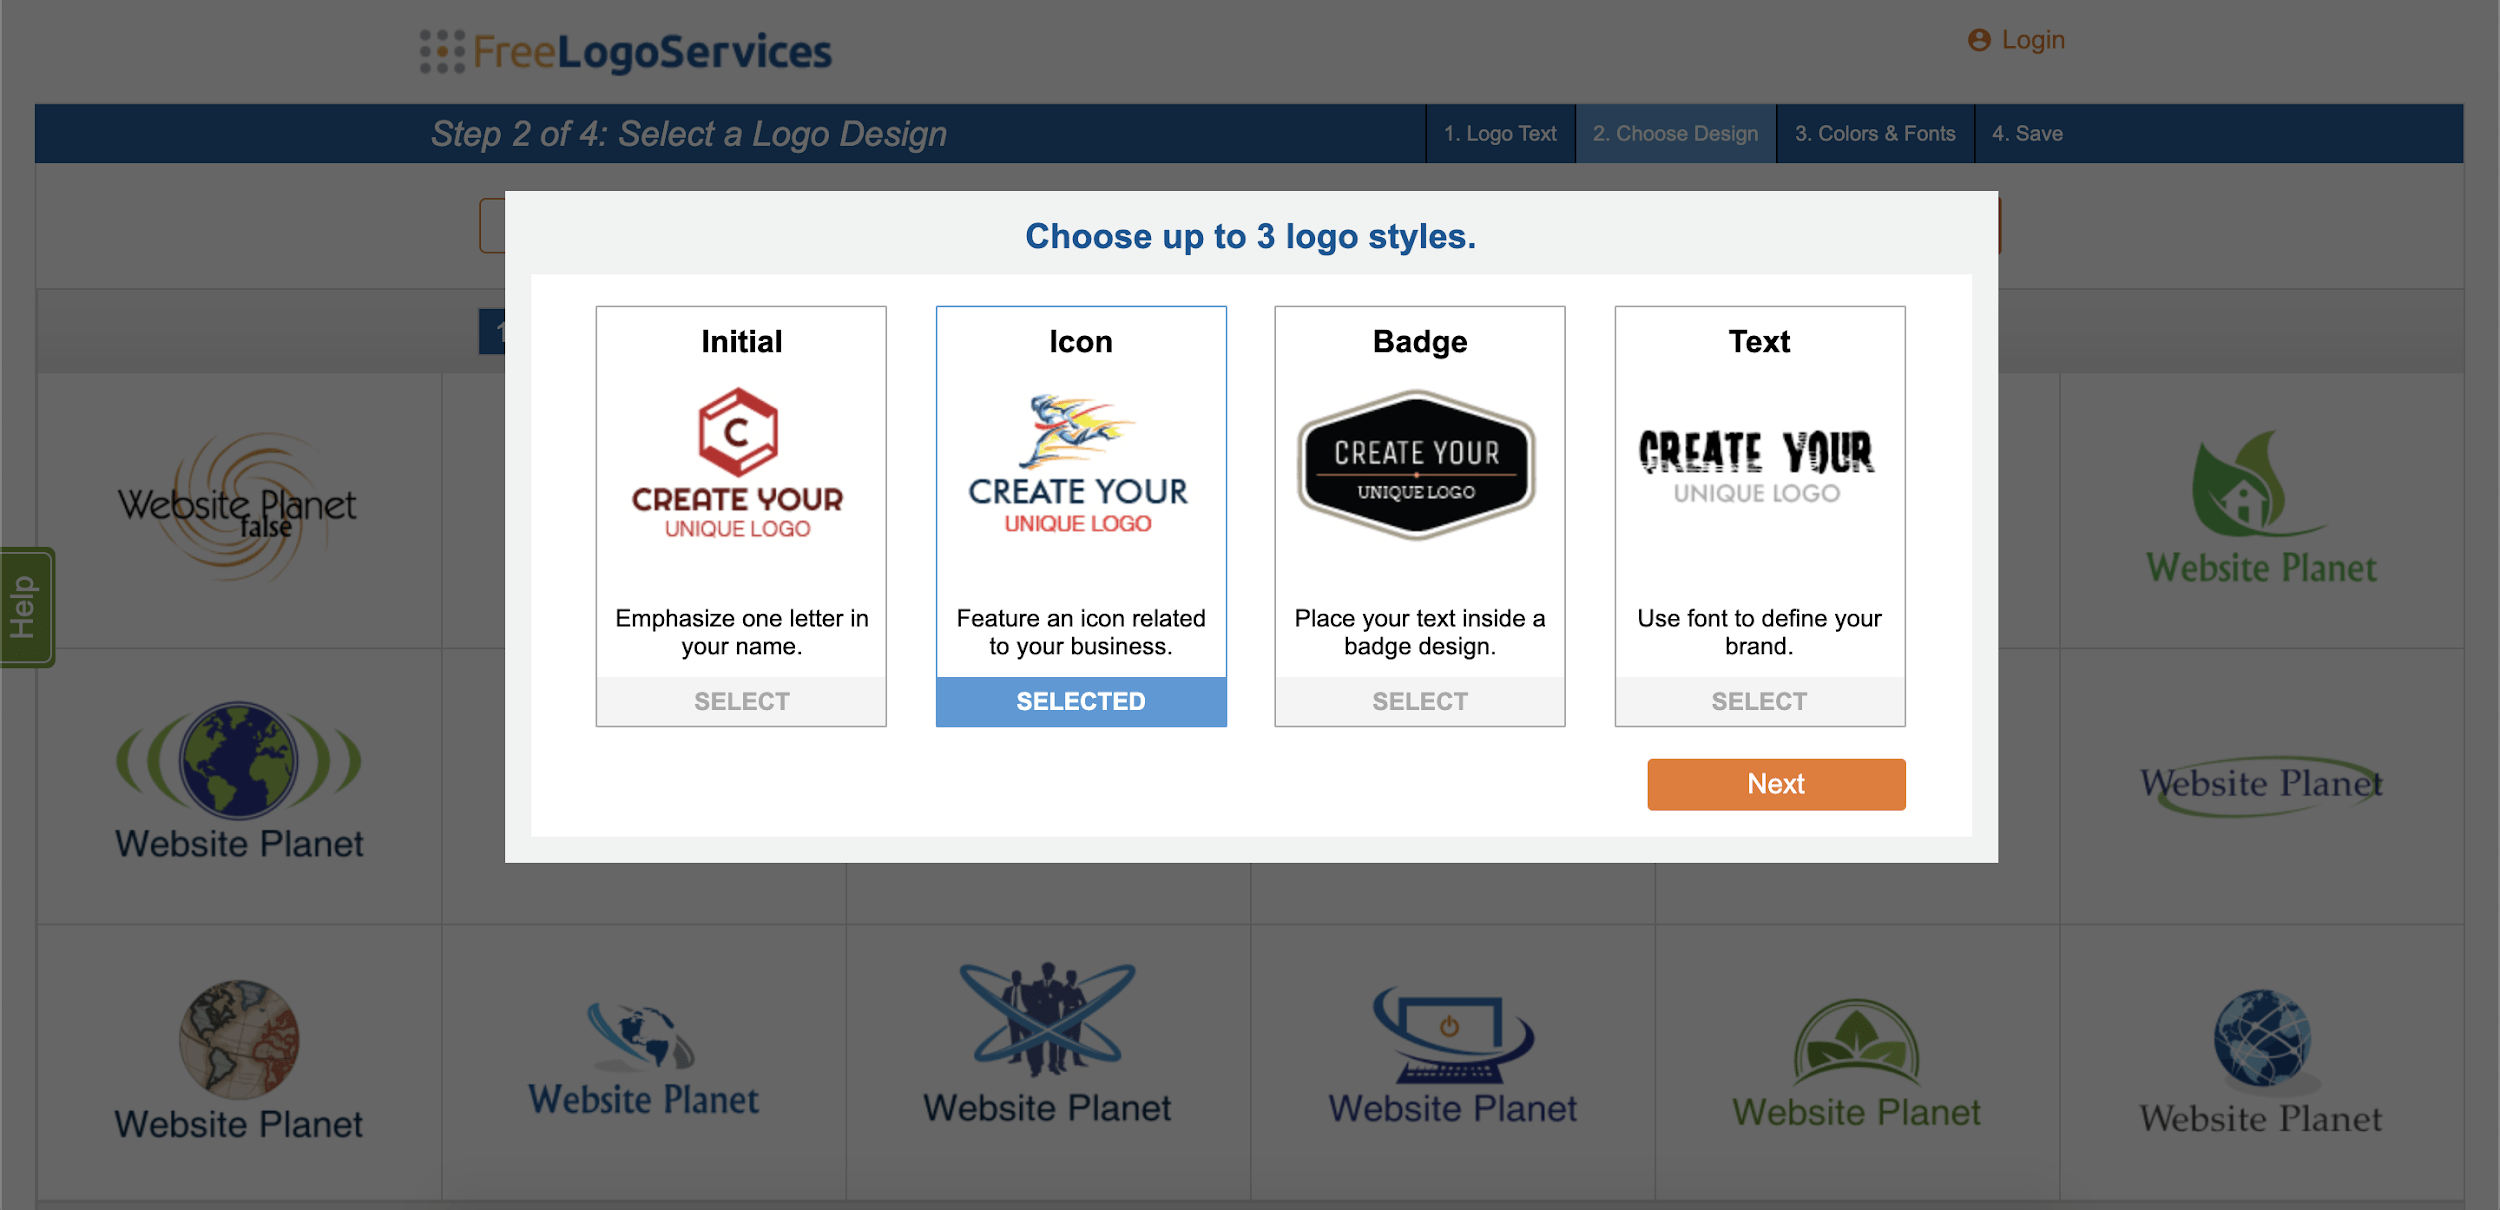 FreeLogoServices review - logo styles screenshot